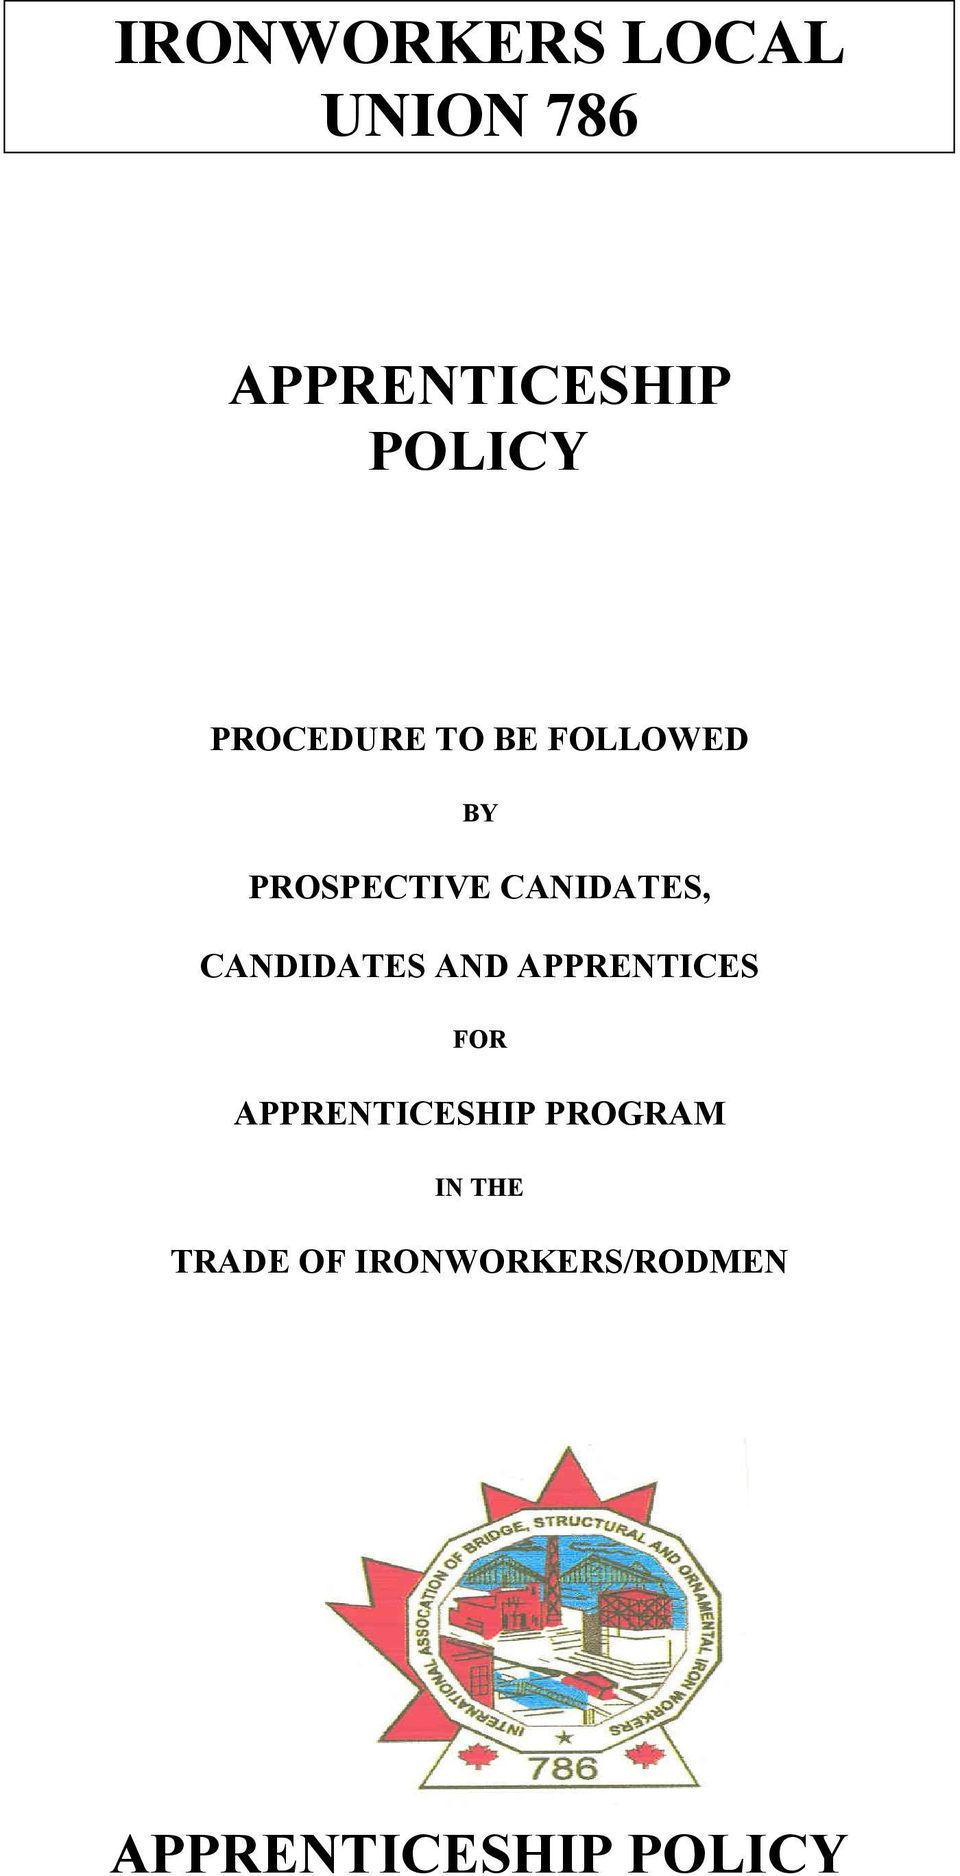 CANDIDATES AND APPRENTICES FOR APPRENTICESHIP